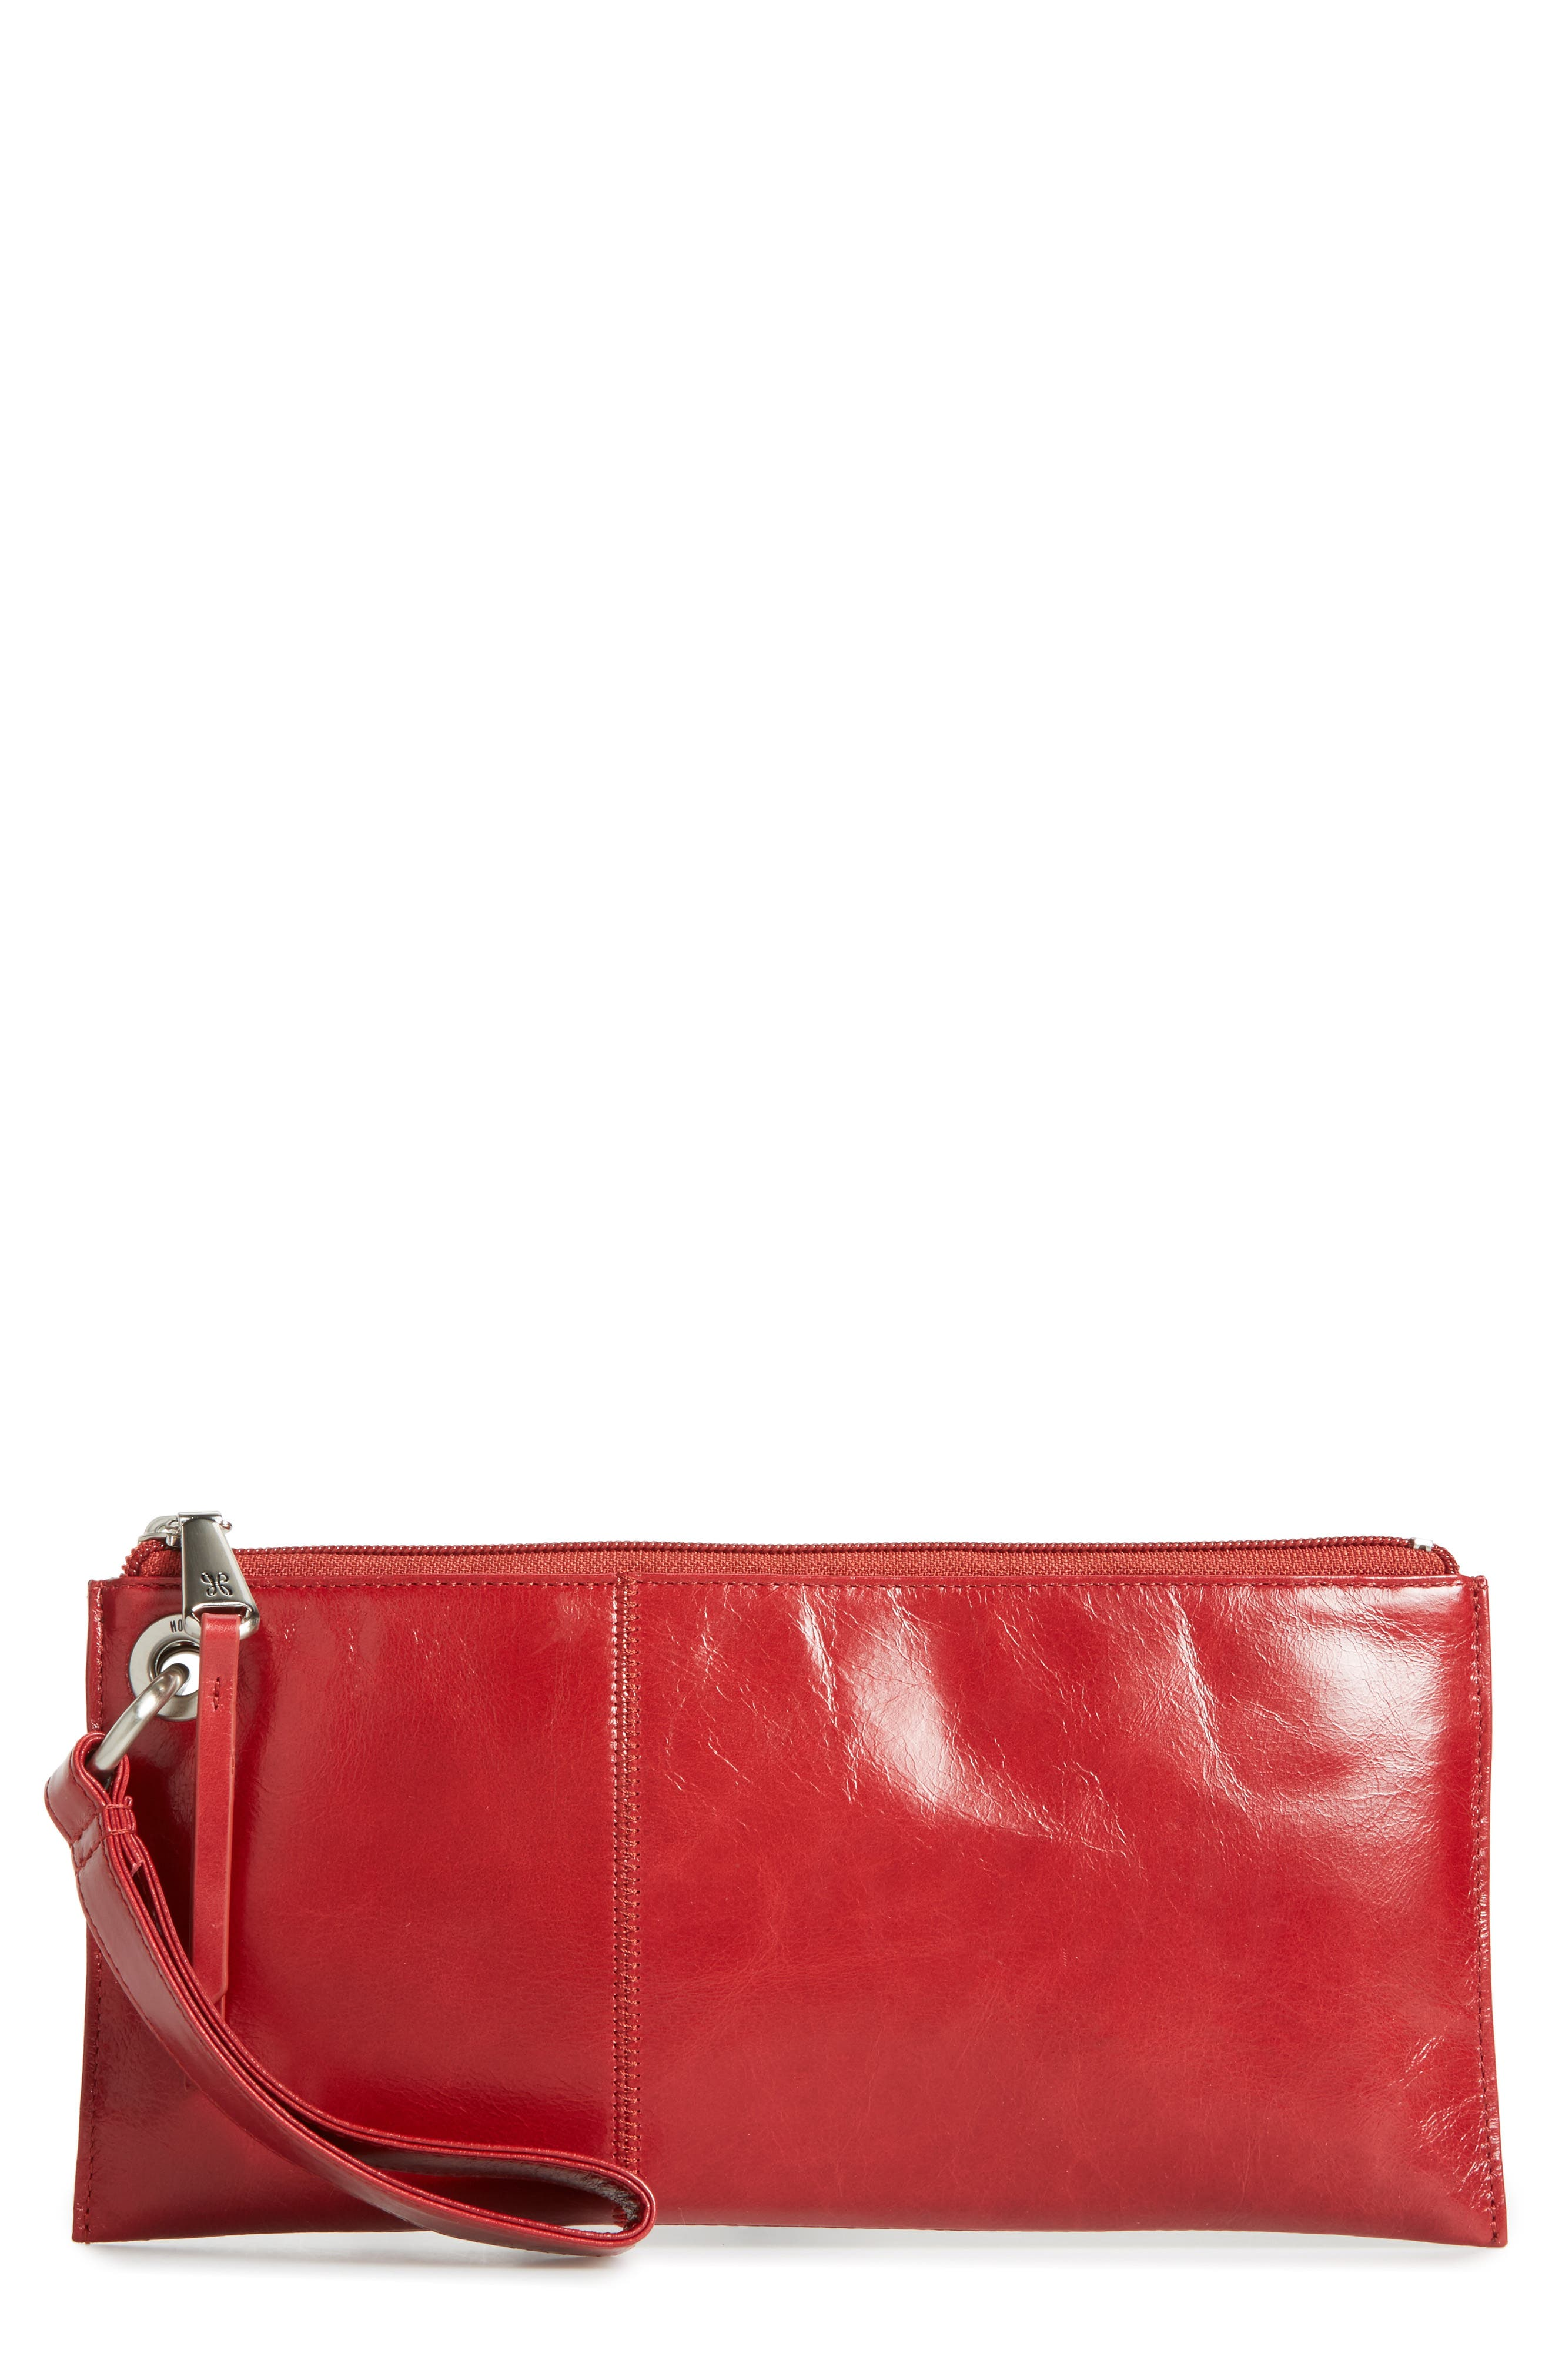 Hobo 'Vida' Leather Clutch